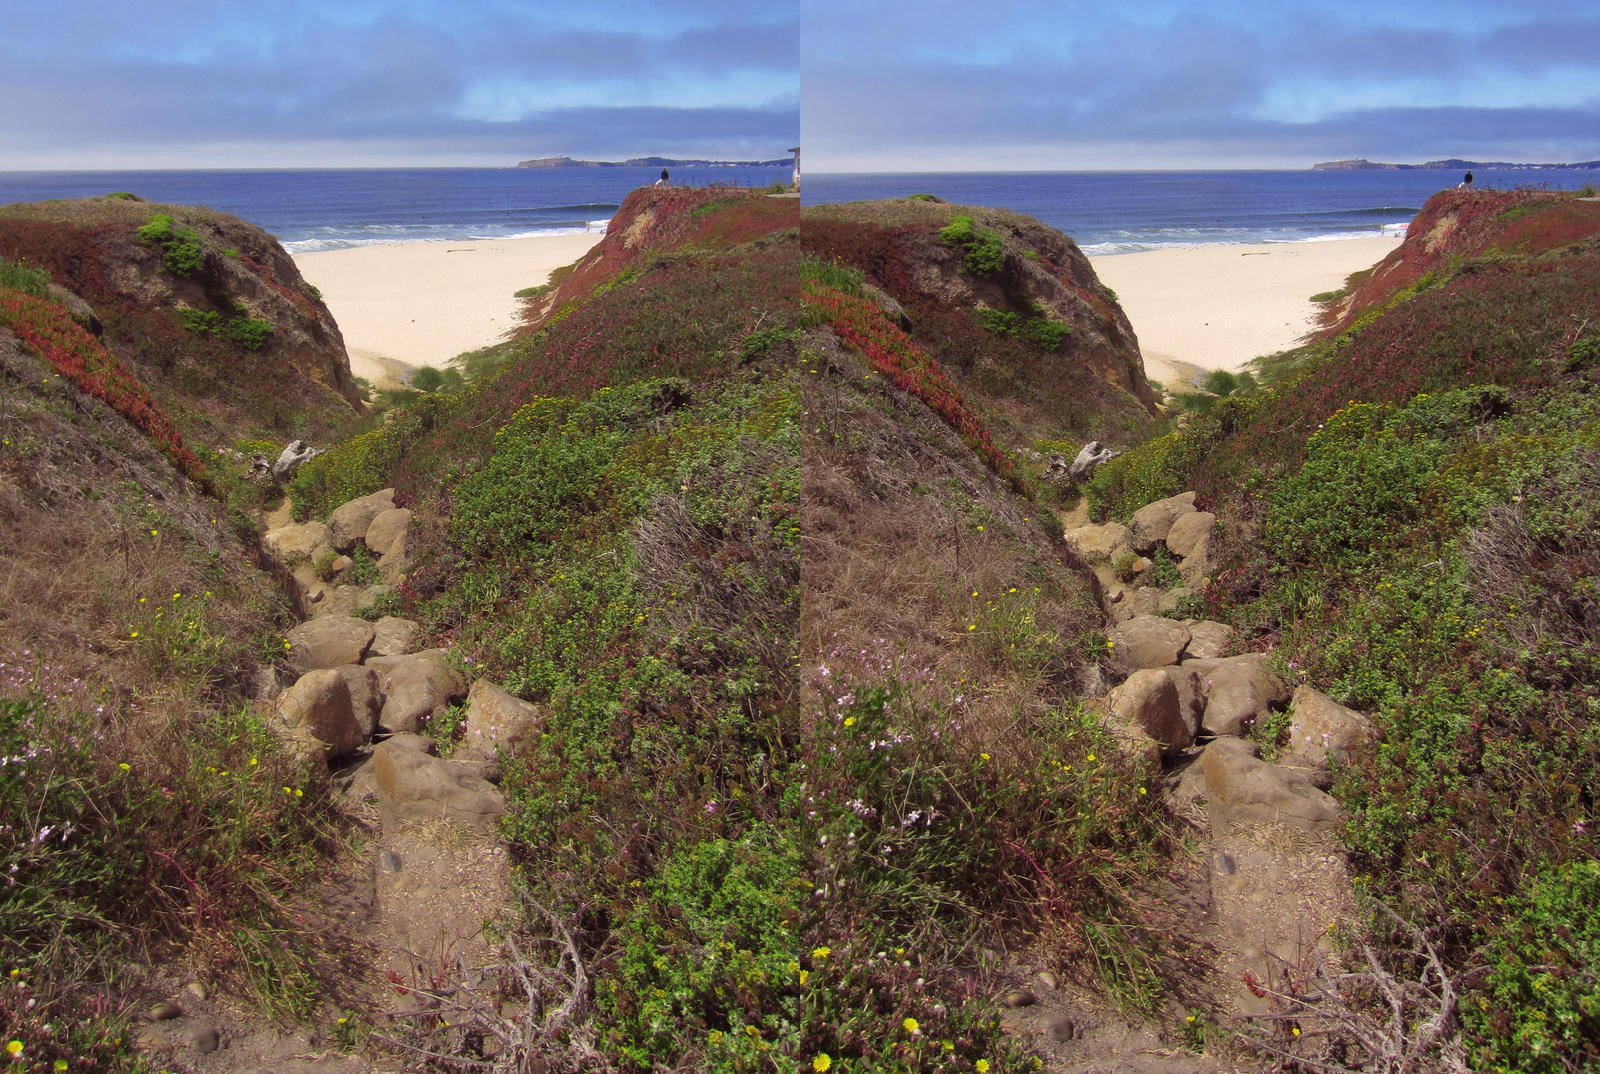 Stereograph - Beach Path by alanbecker